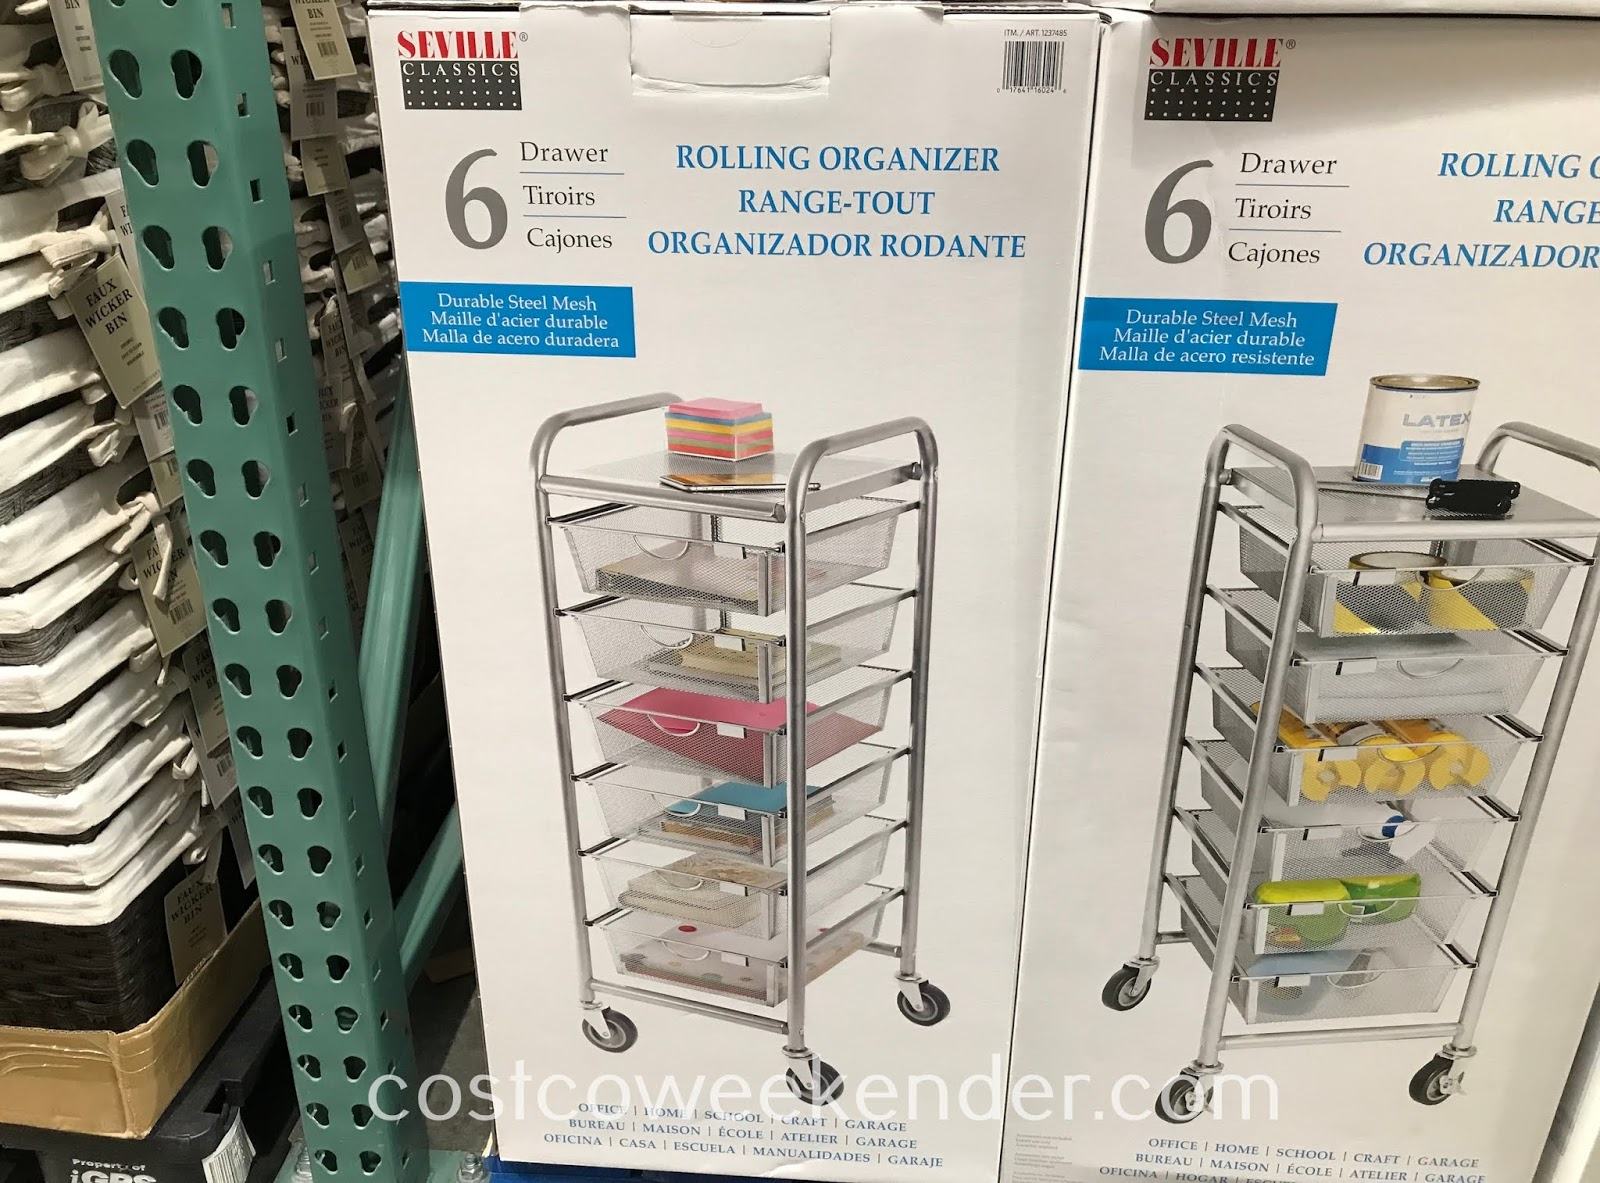 Get your home organized with the Seville Classics 6-Drawer Rolling Organizer